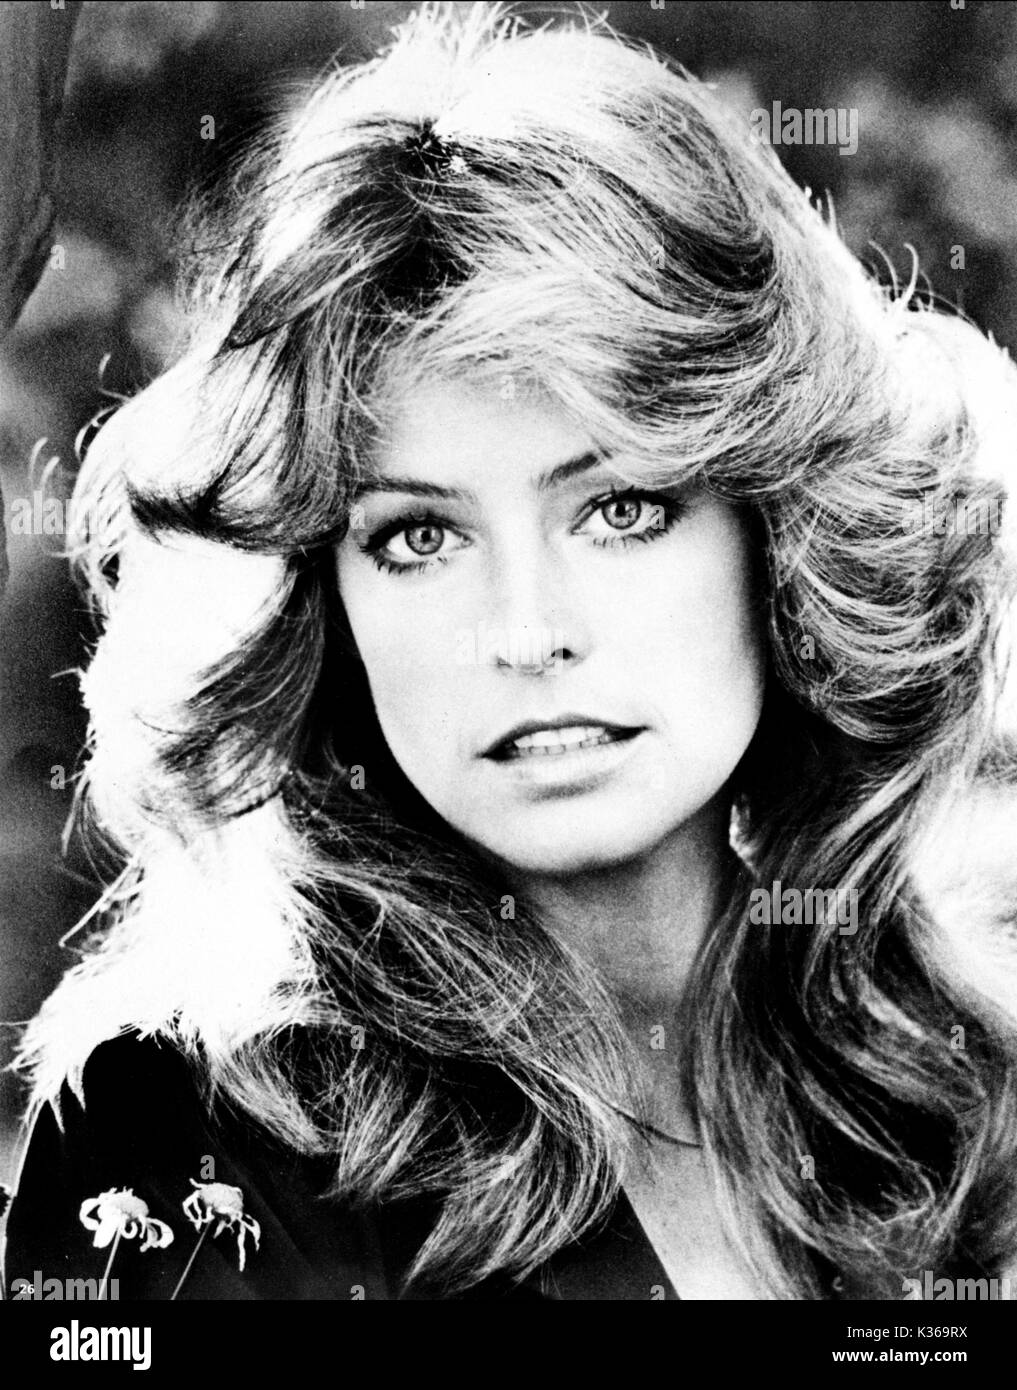 Farrah Fawcett Black and White Stock Photos & Images - Alamy